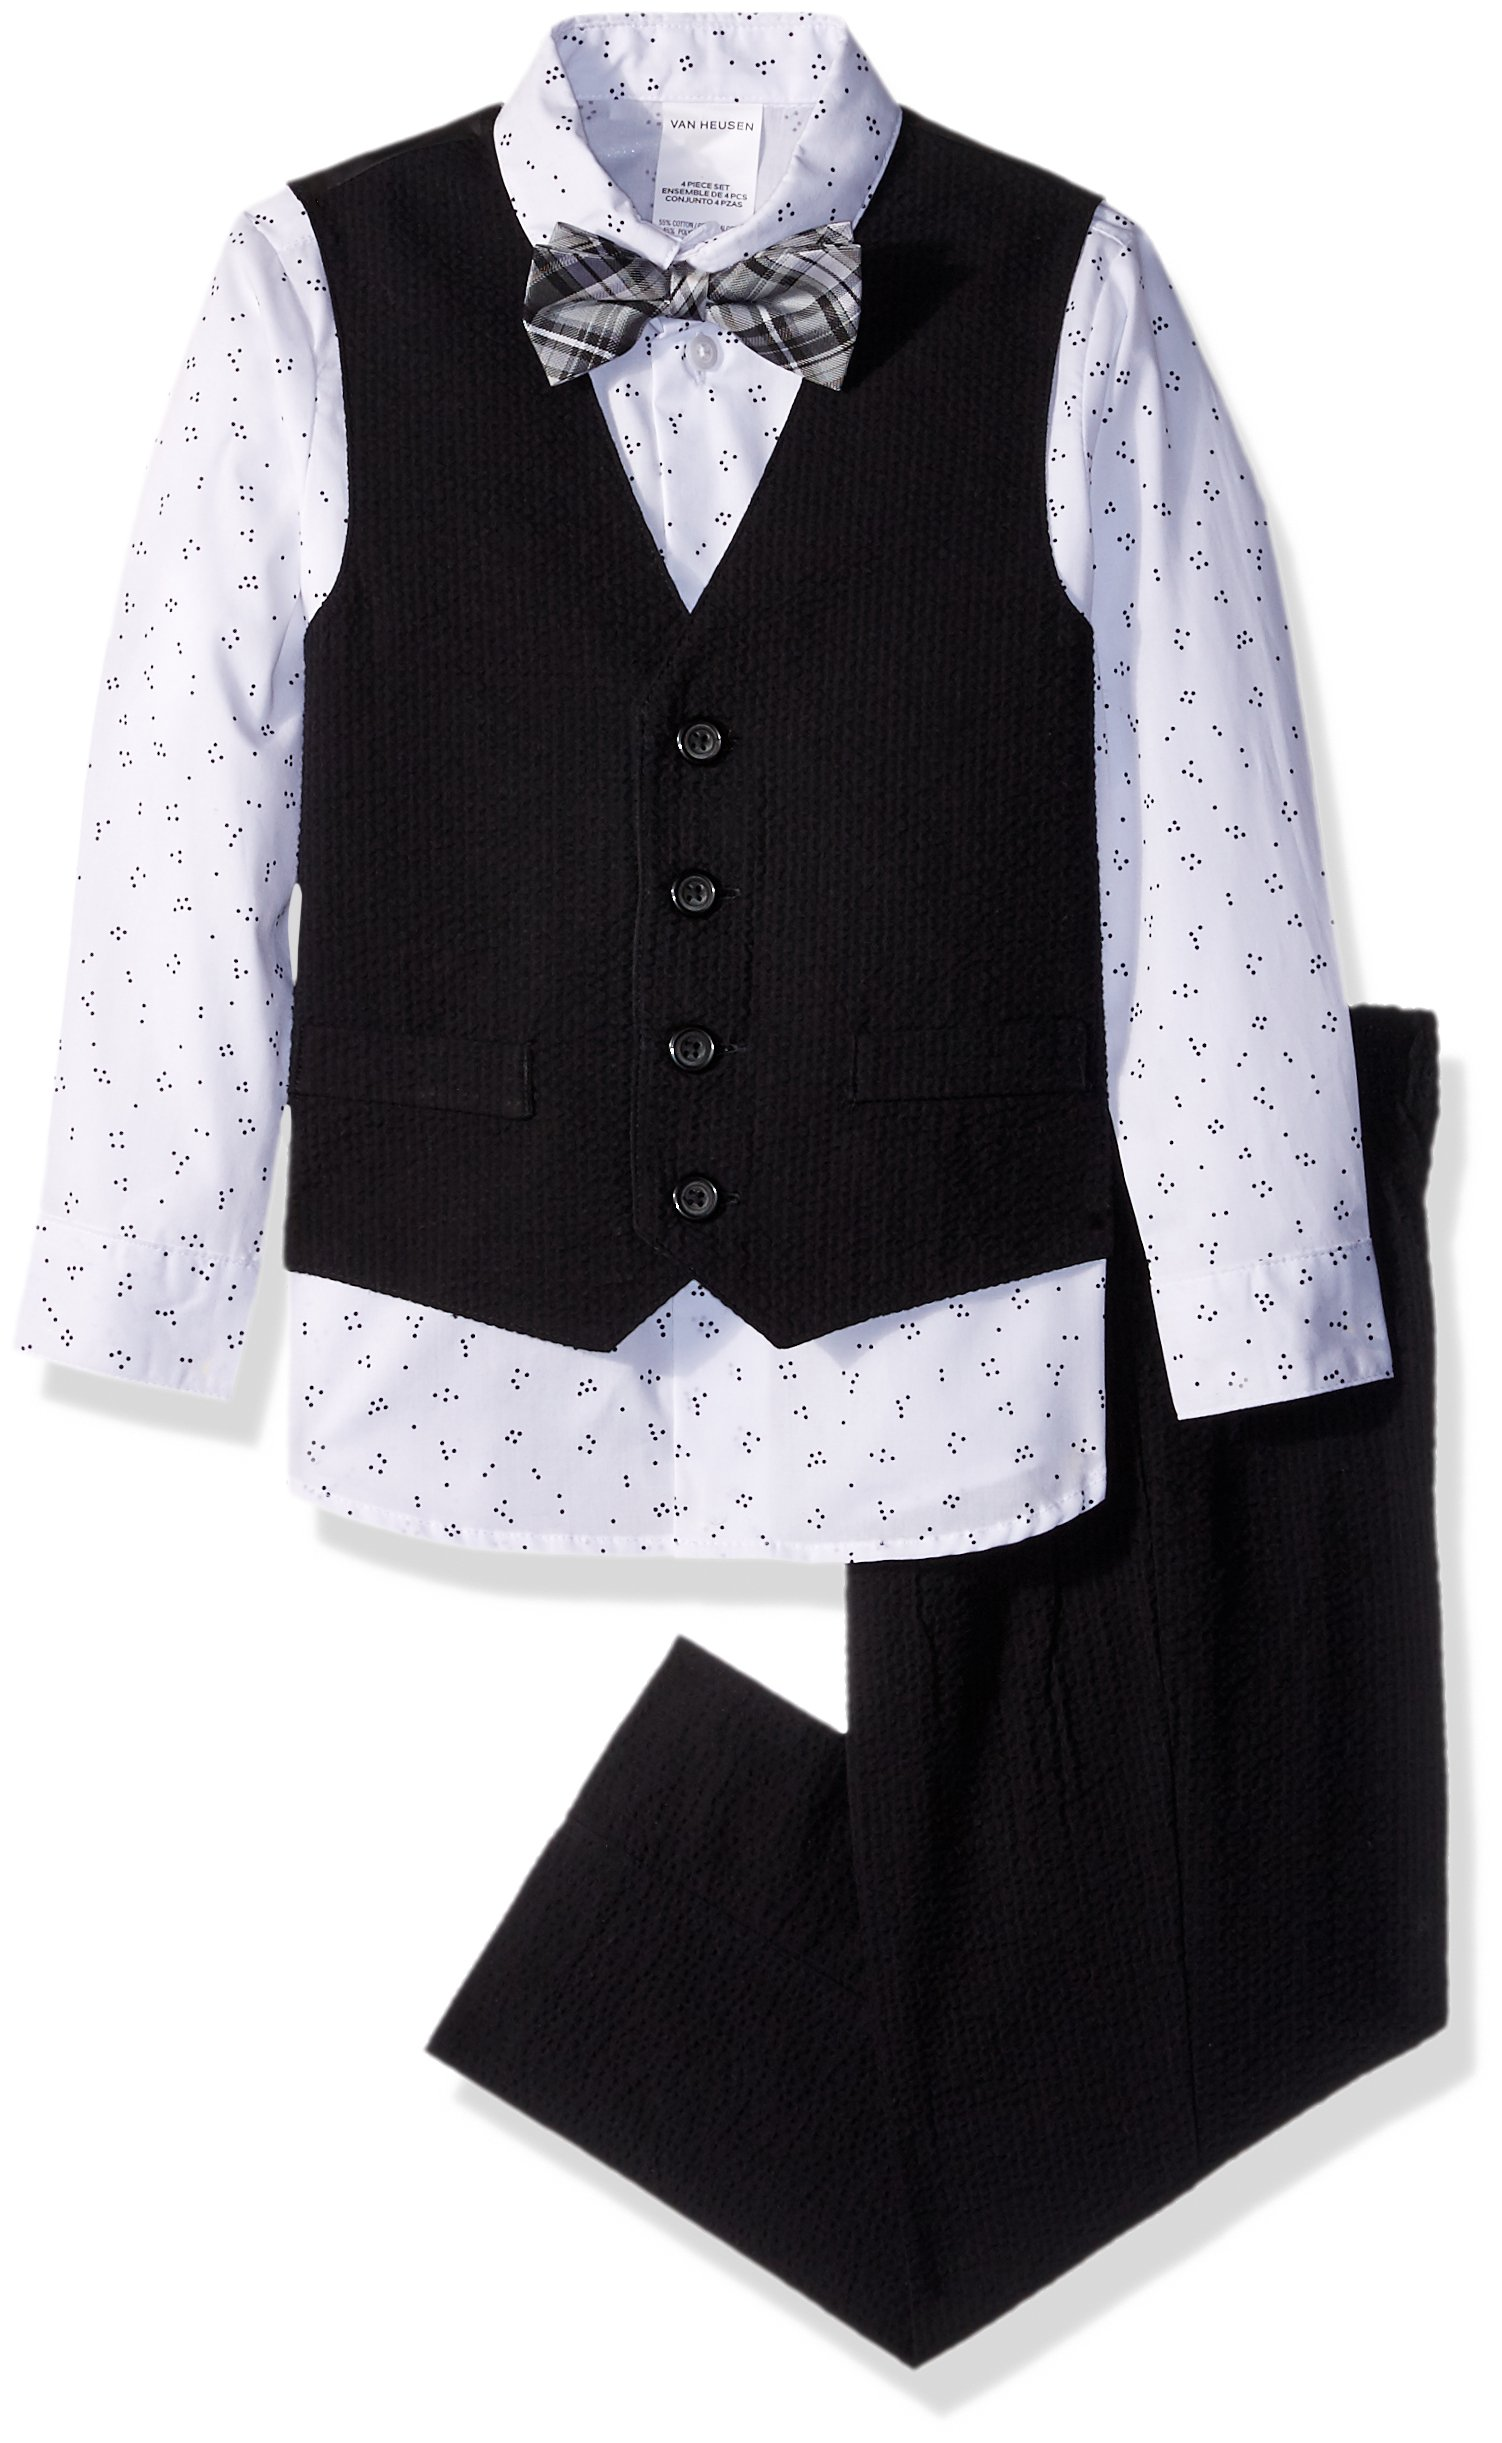 Van Heusen Little Boys' Patterned Four-Piece Vest Set, Seersucker Black, 4